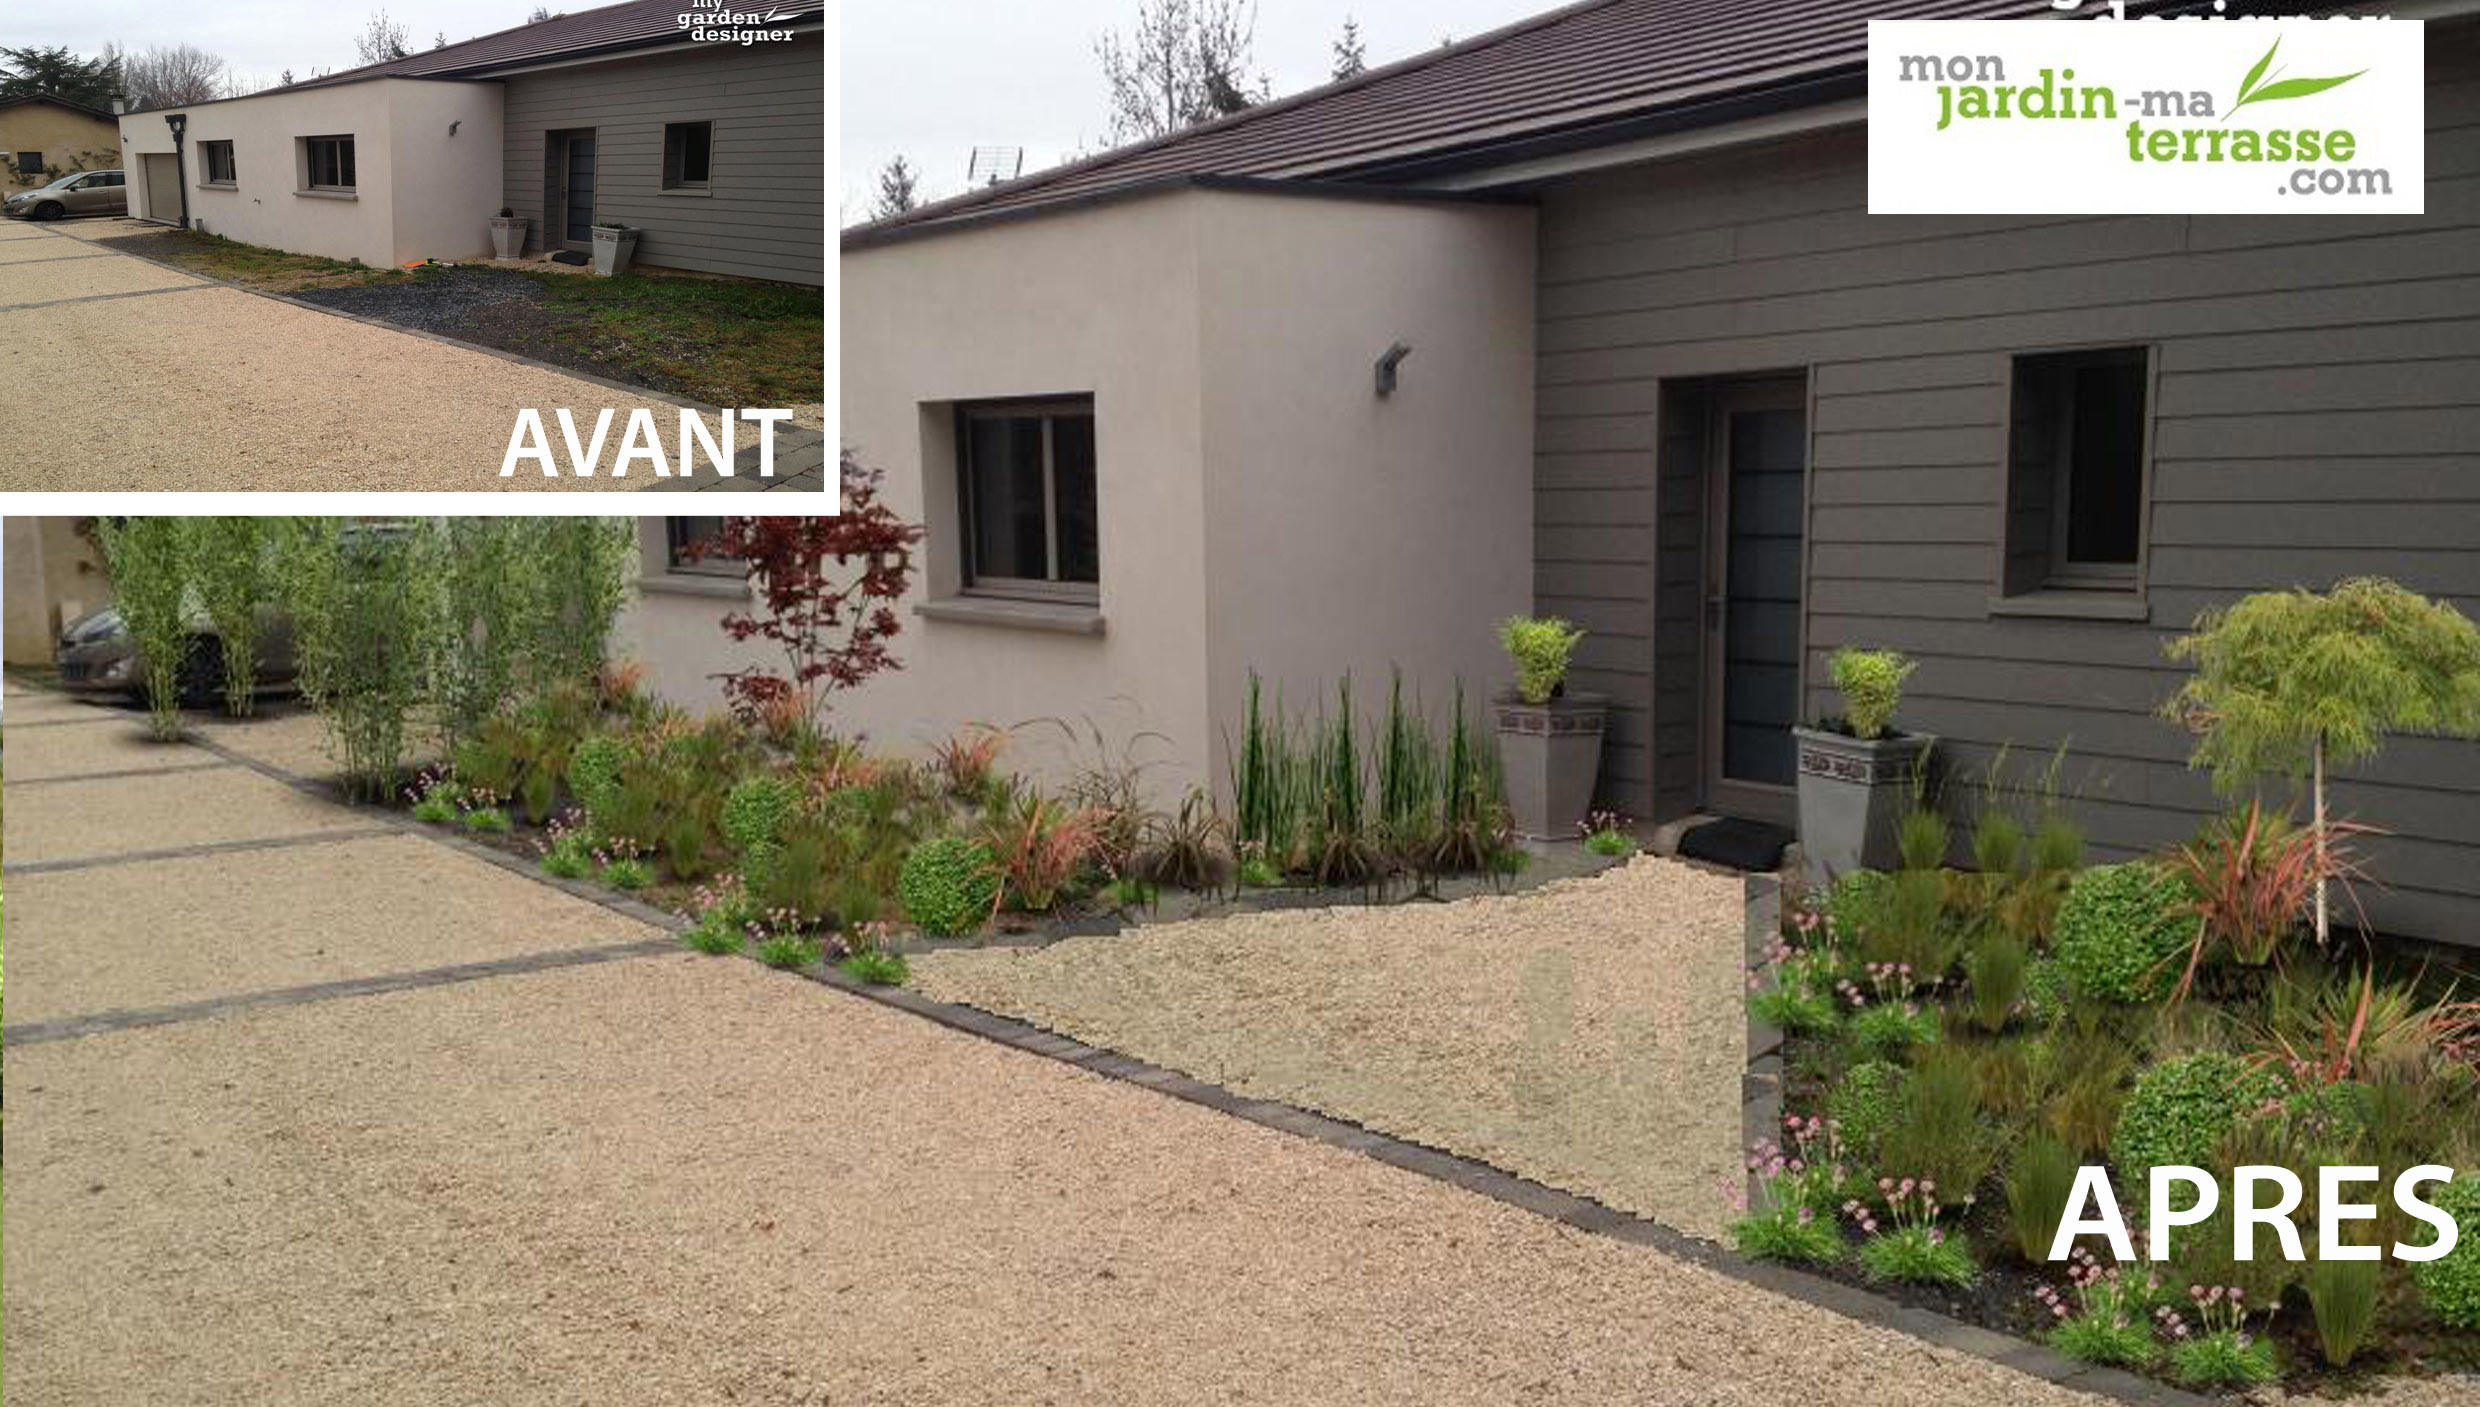 Am nagement du jardin de l entr e d une maison contemporaine monjardin for Photo amenagement jardin